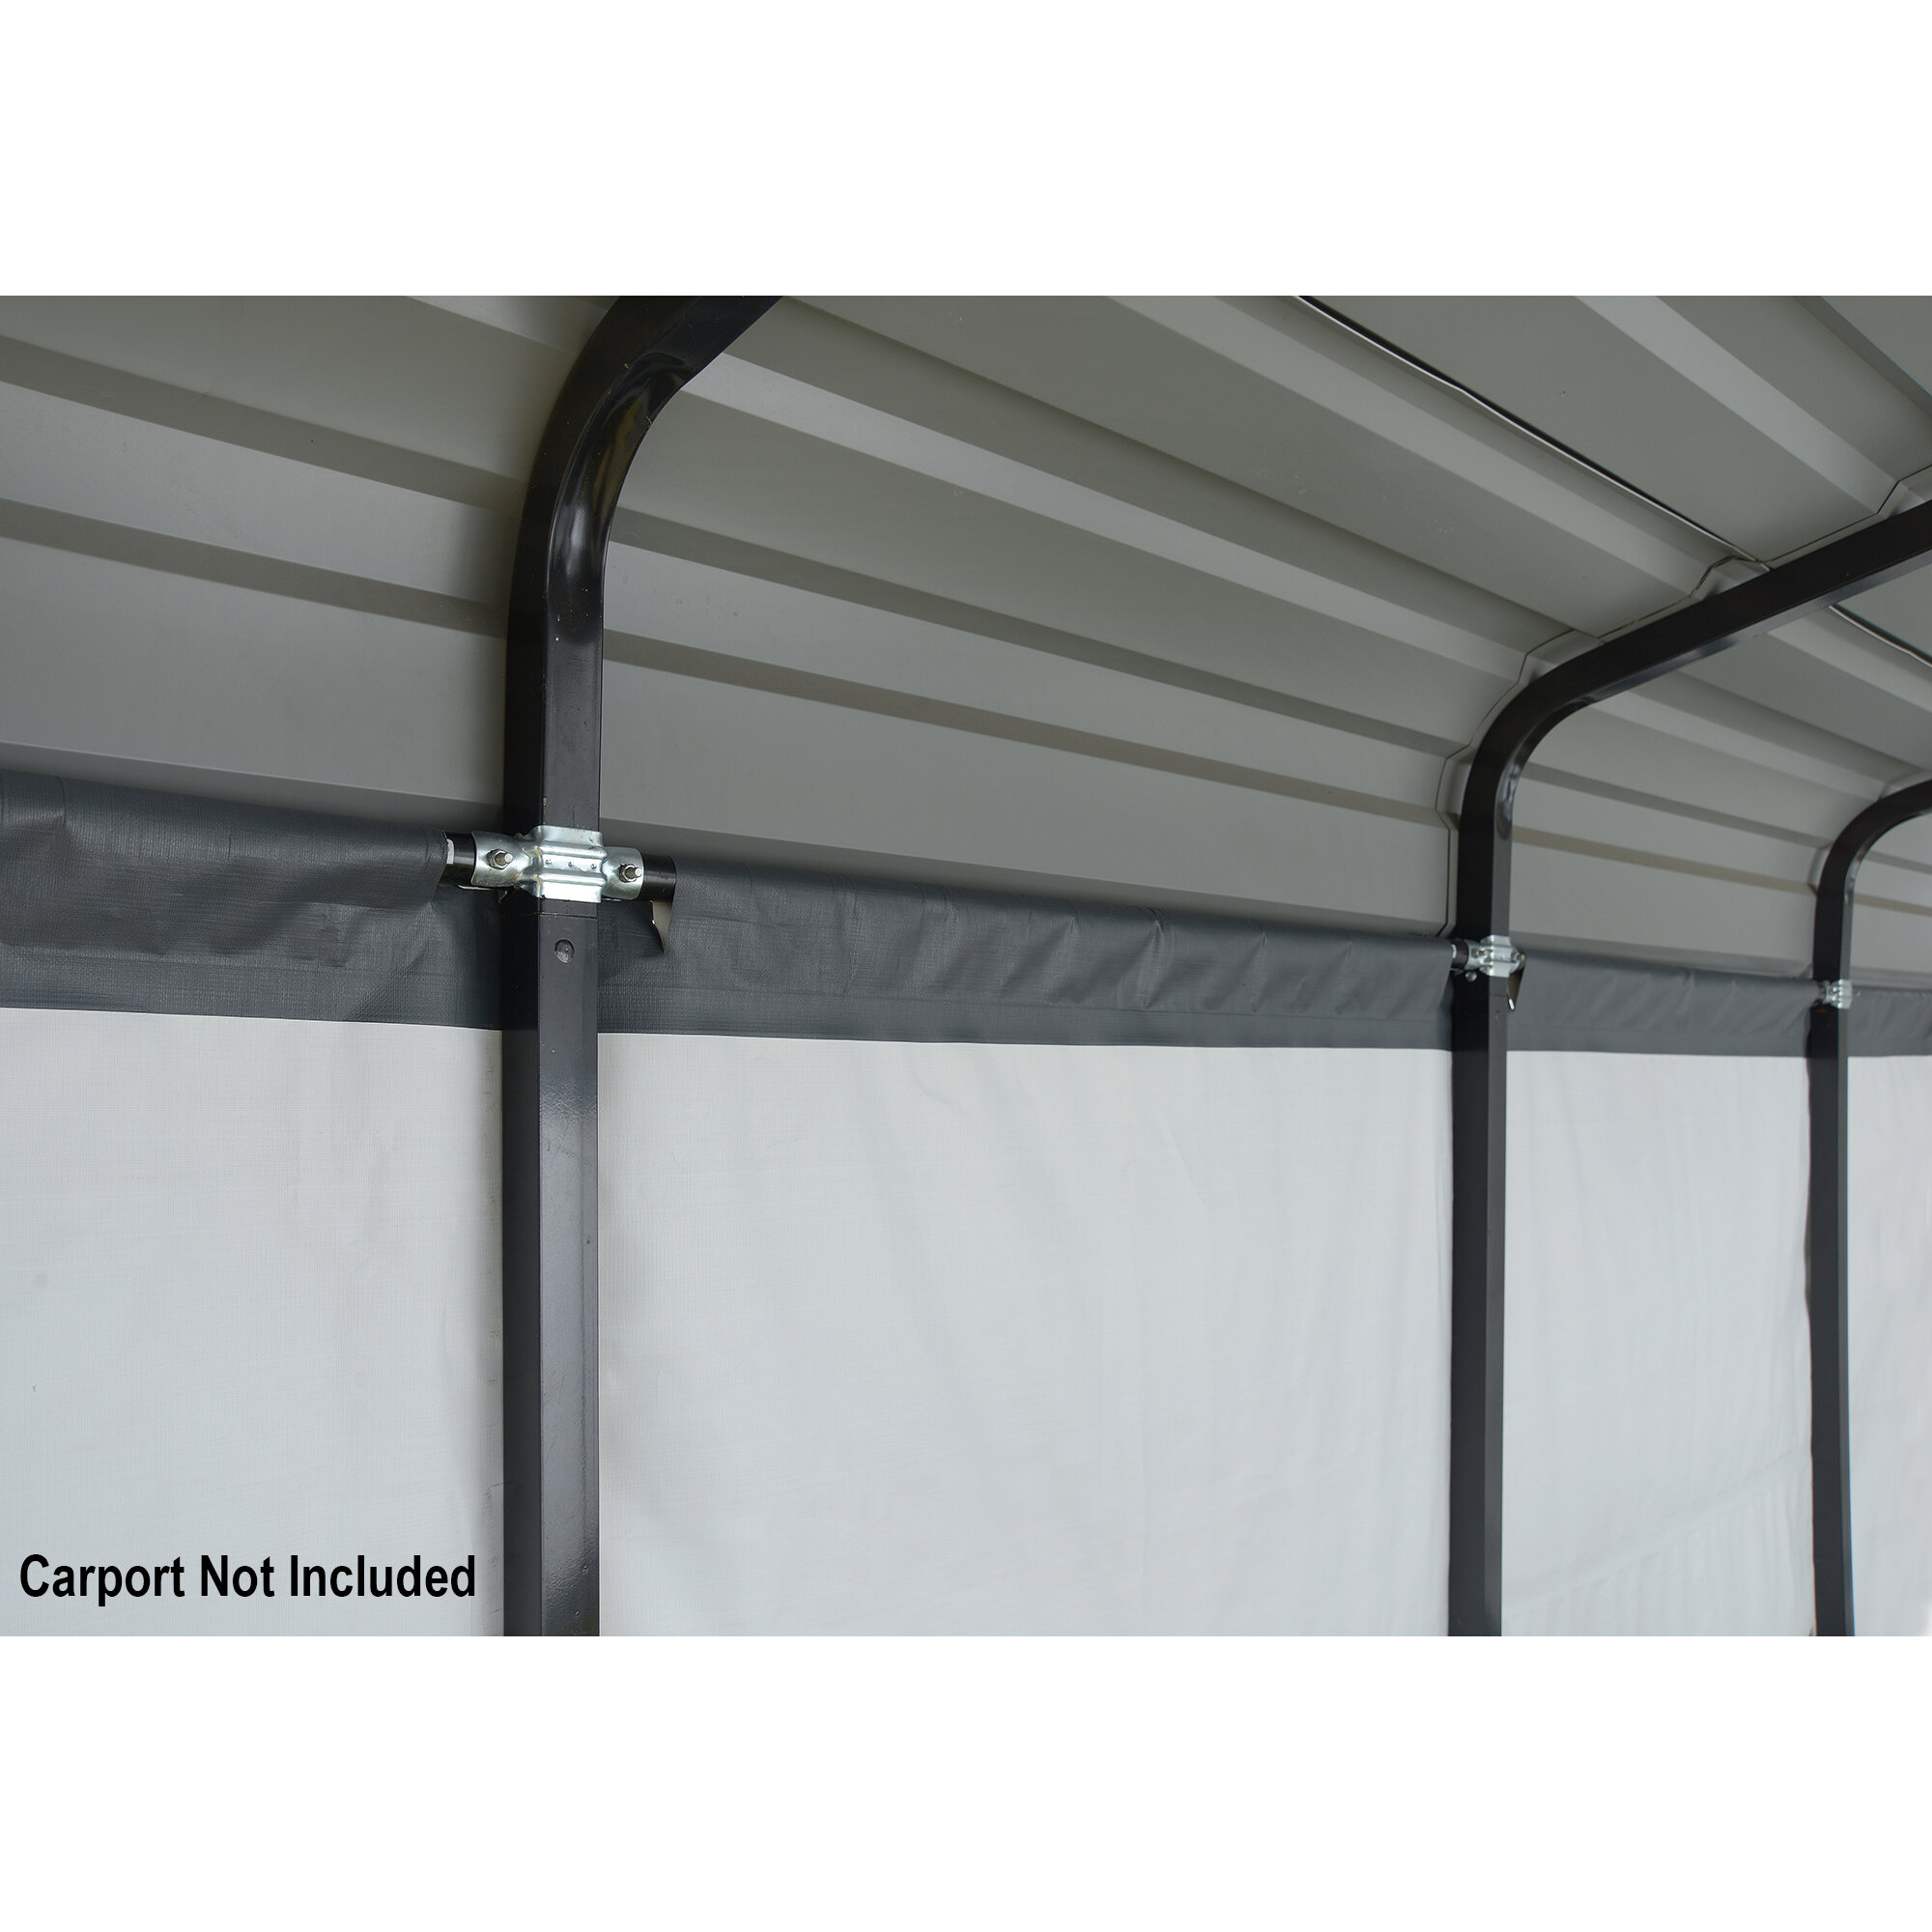 Carport Mon Abri De Jardin enclosure kit 12 ft. x 20 ft. replacement canopy